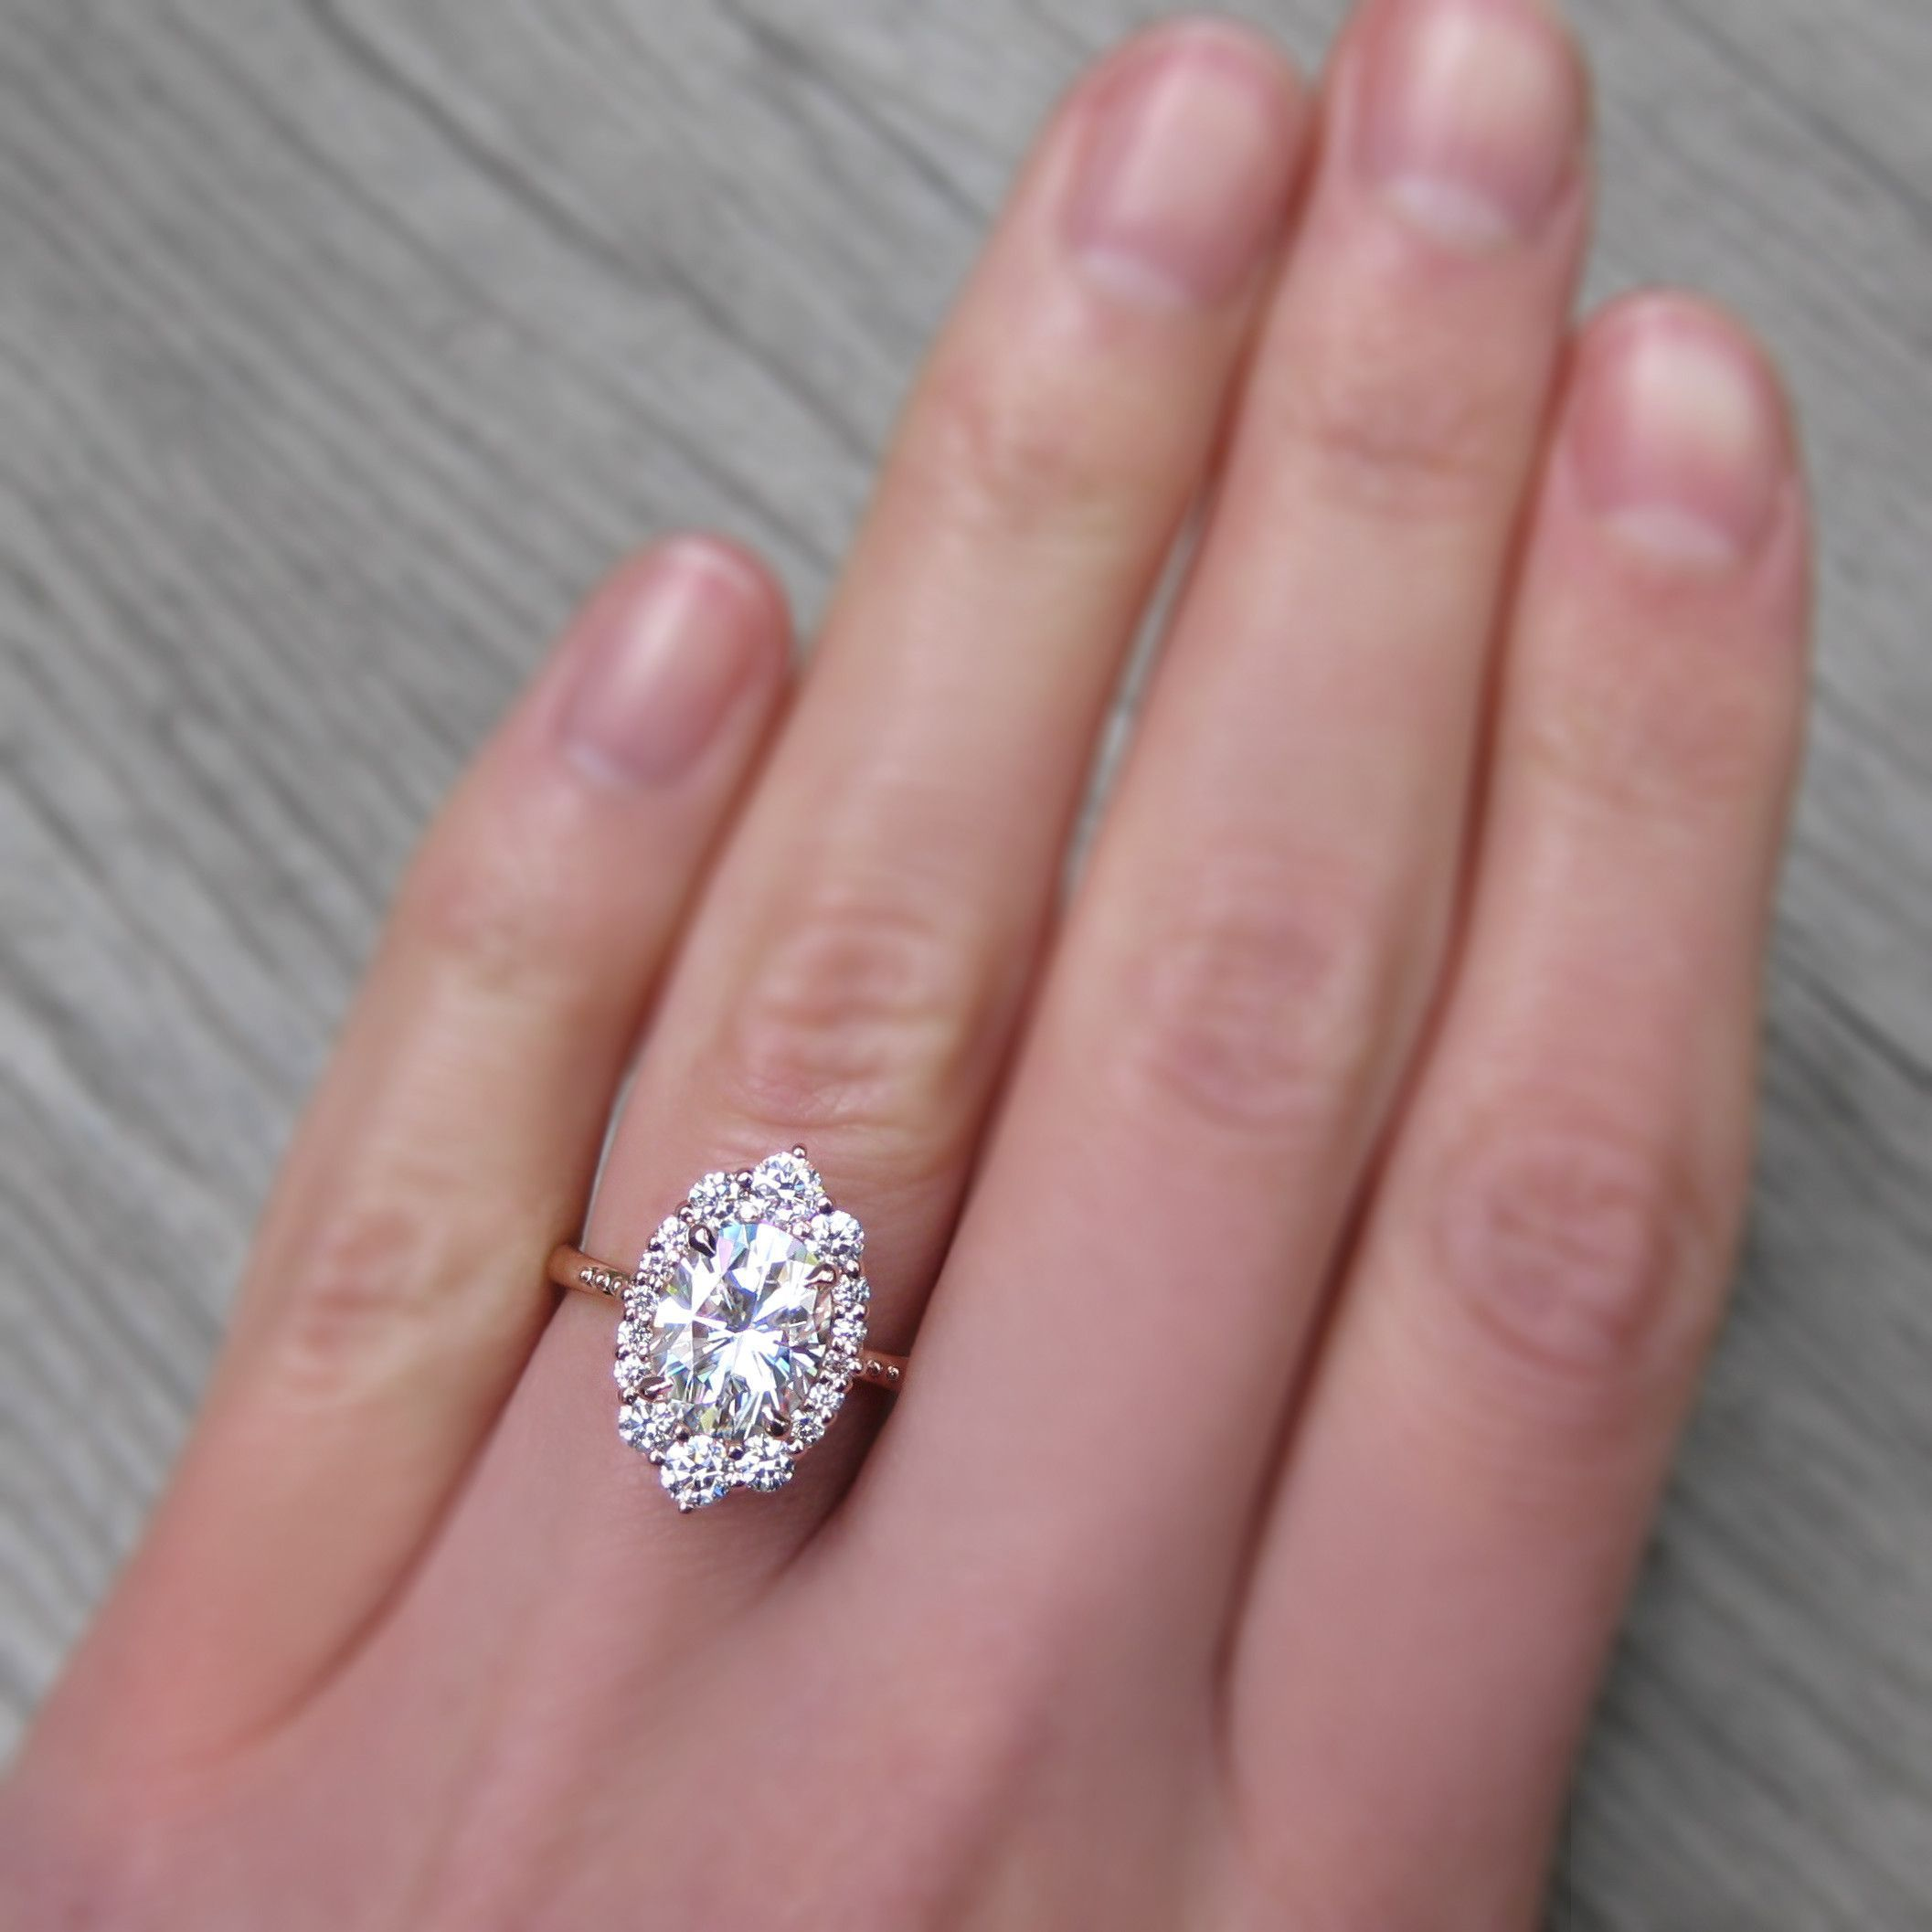 My absolute dream ring. Moissanite is an ethical decision over ...